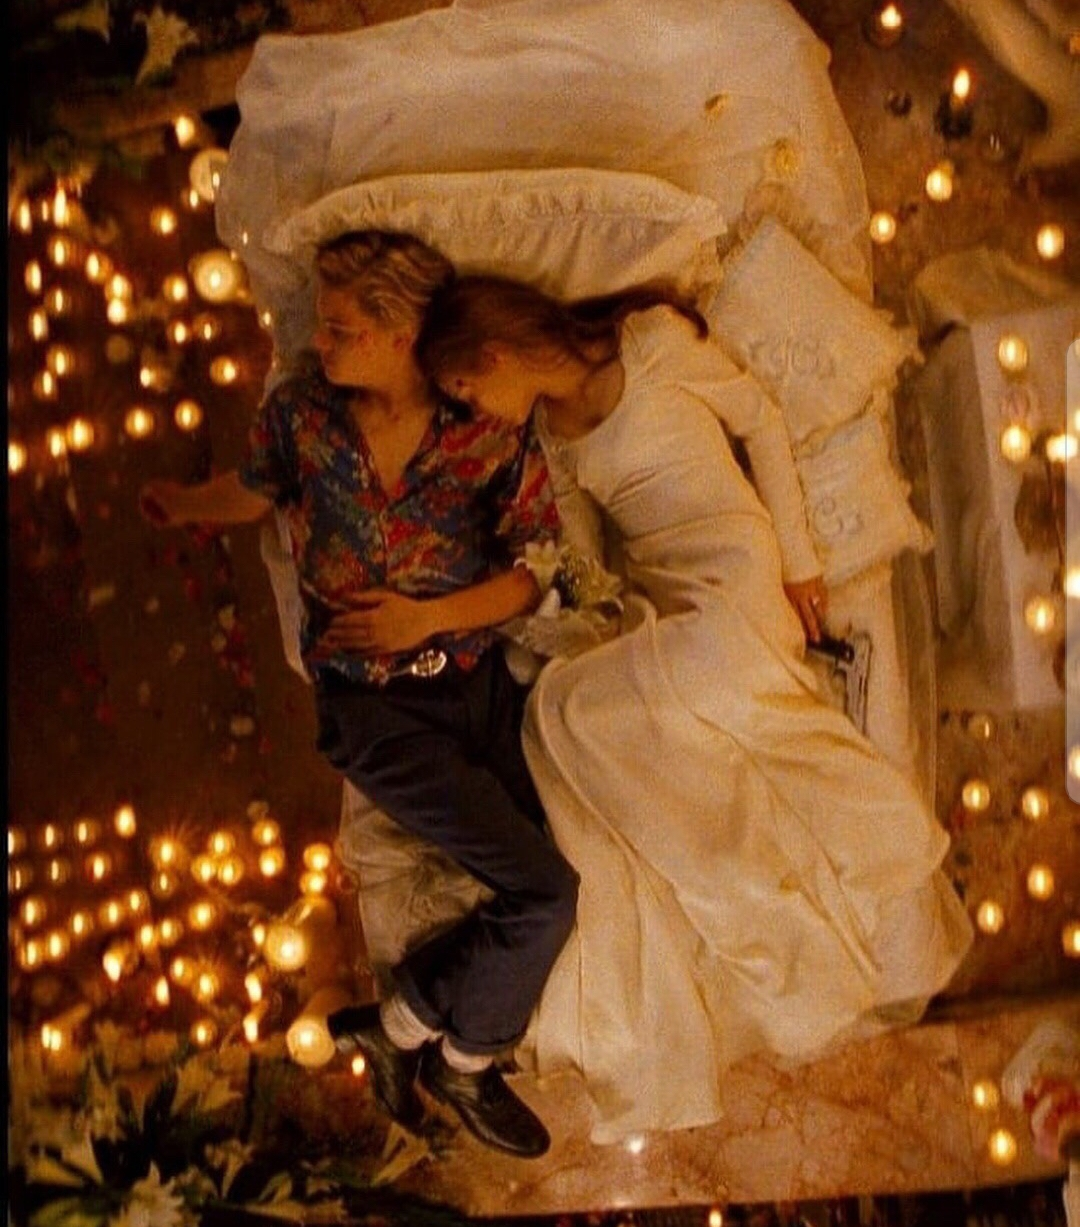 Romeo + Juliet (1996) shared by Angel or Demon